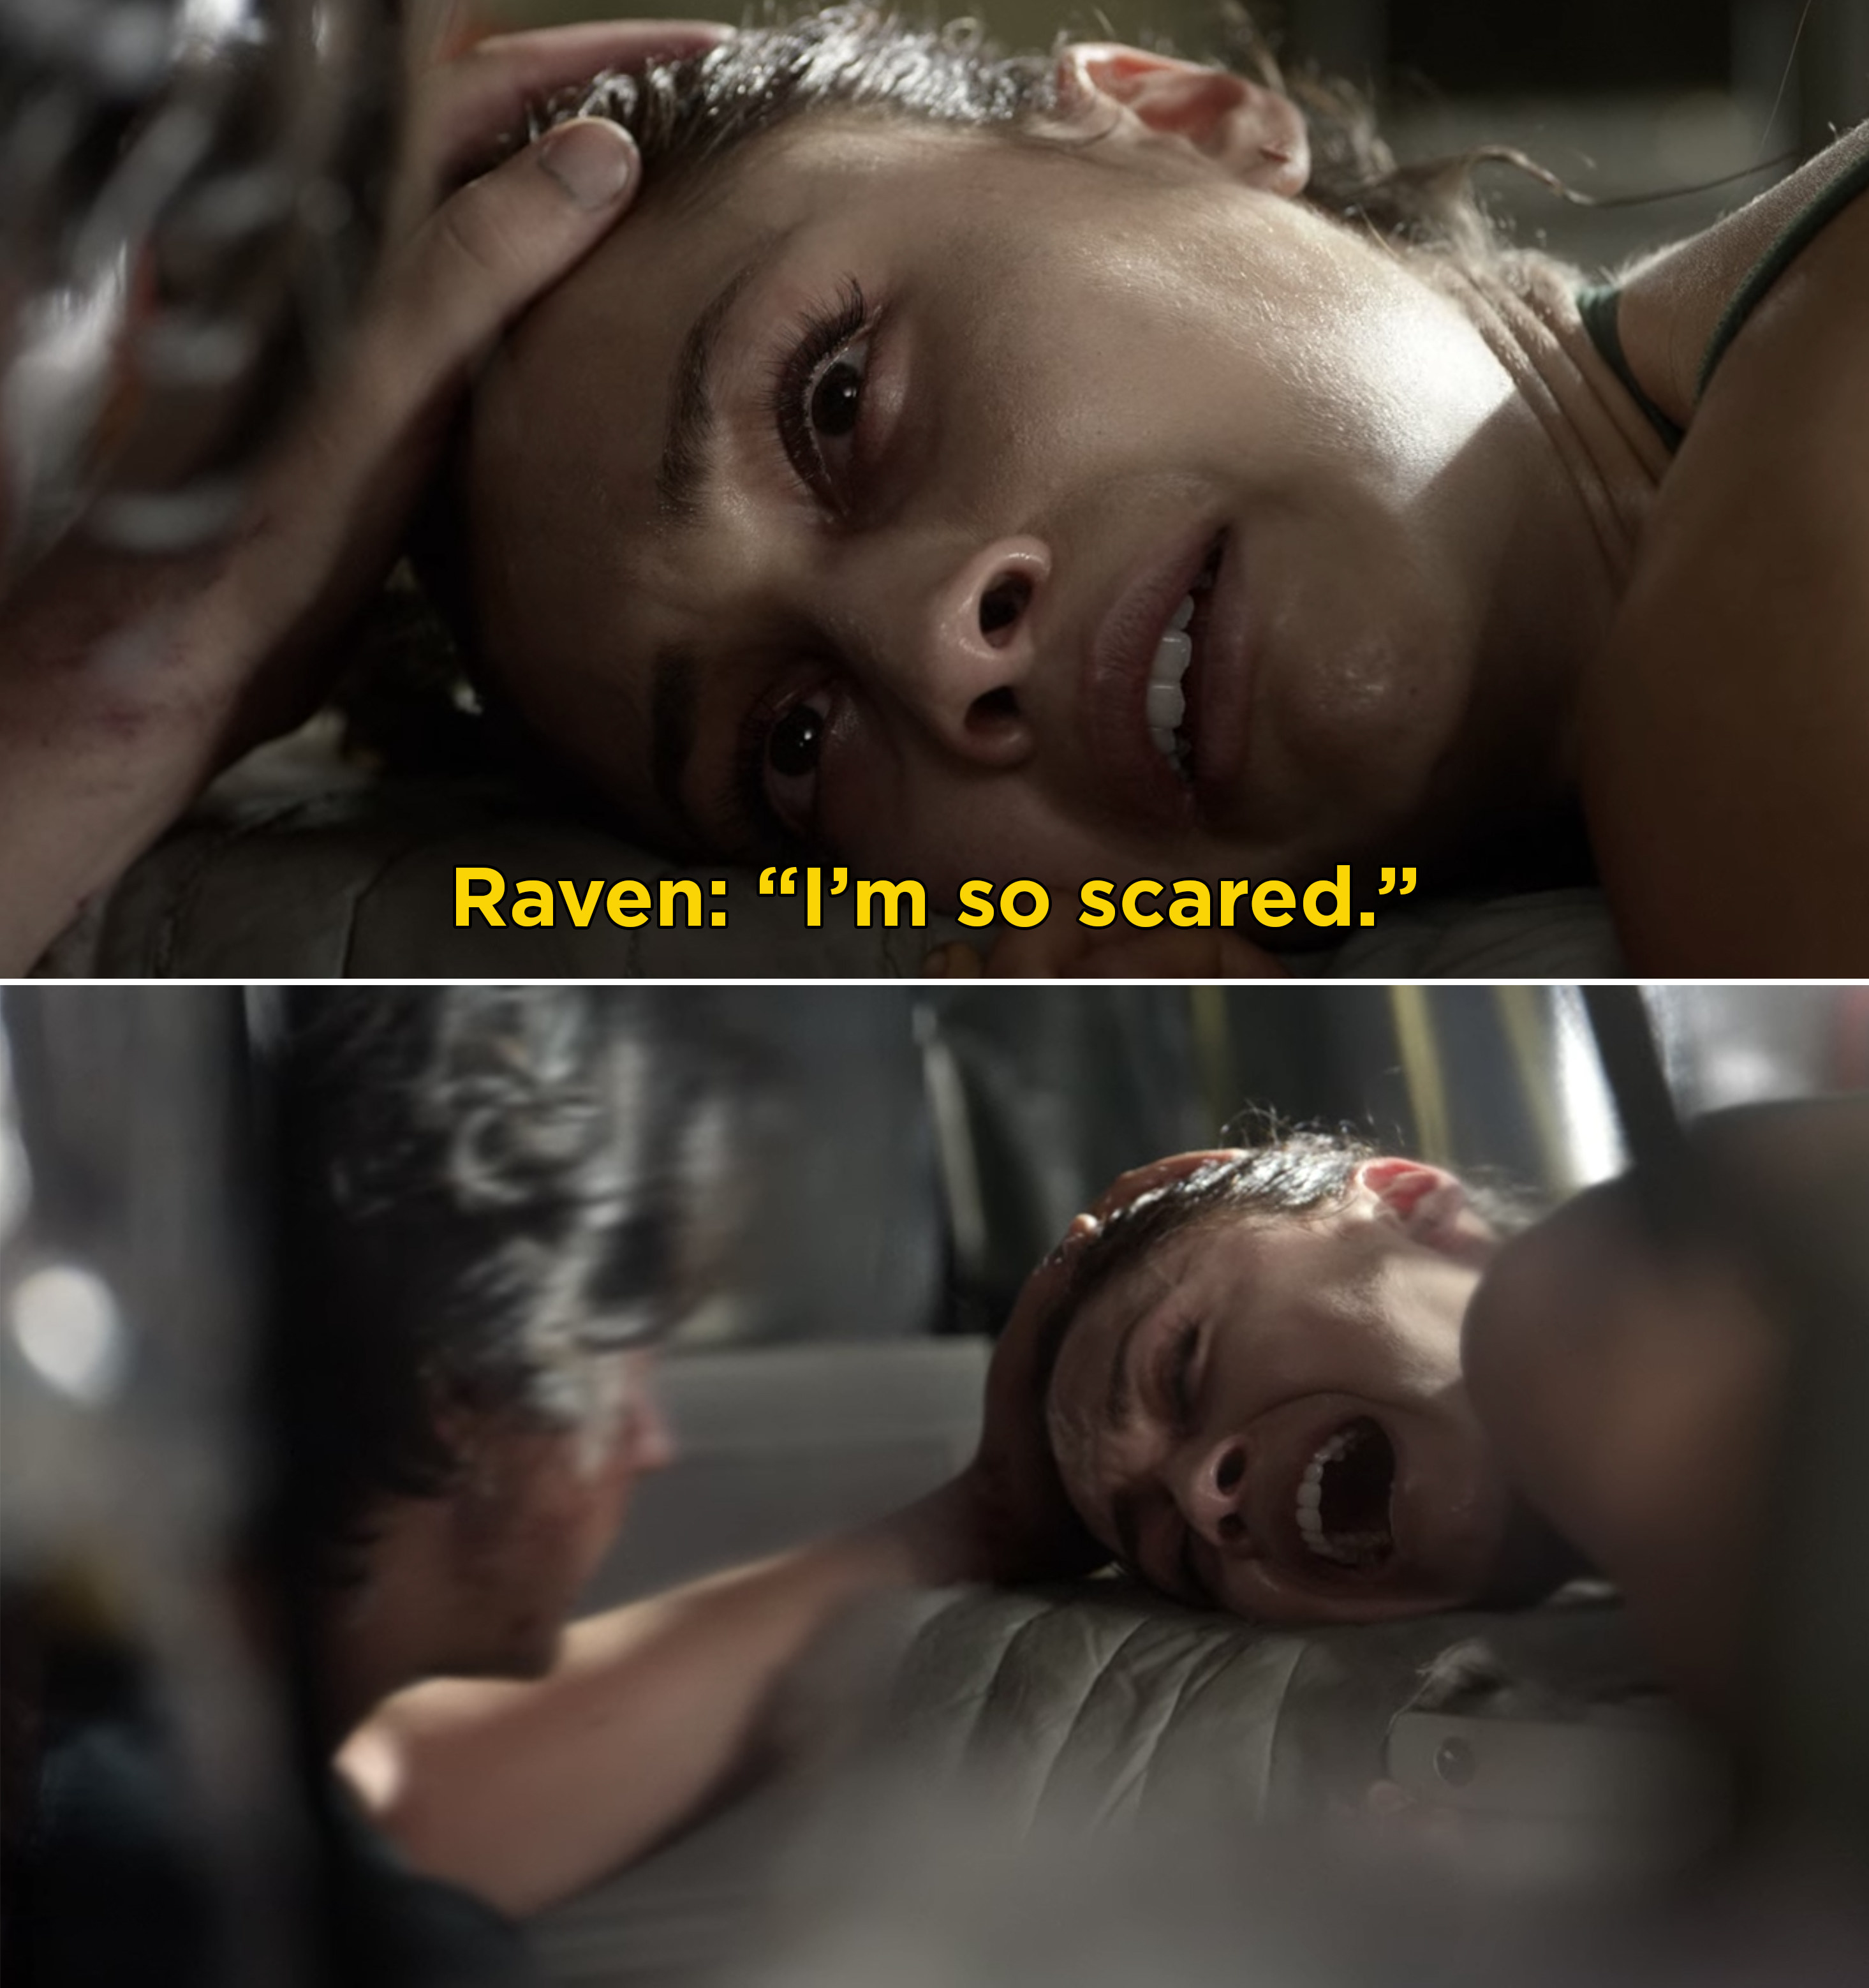 Raven crying and saying she's scared while being operated on